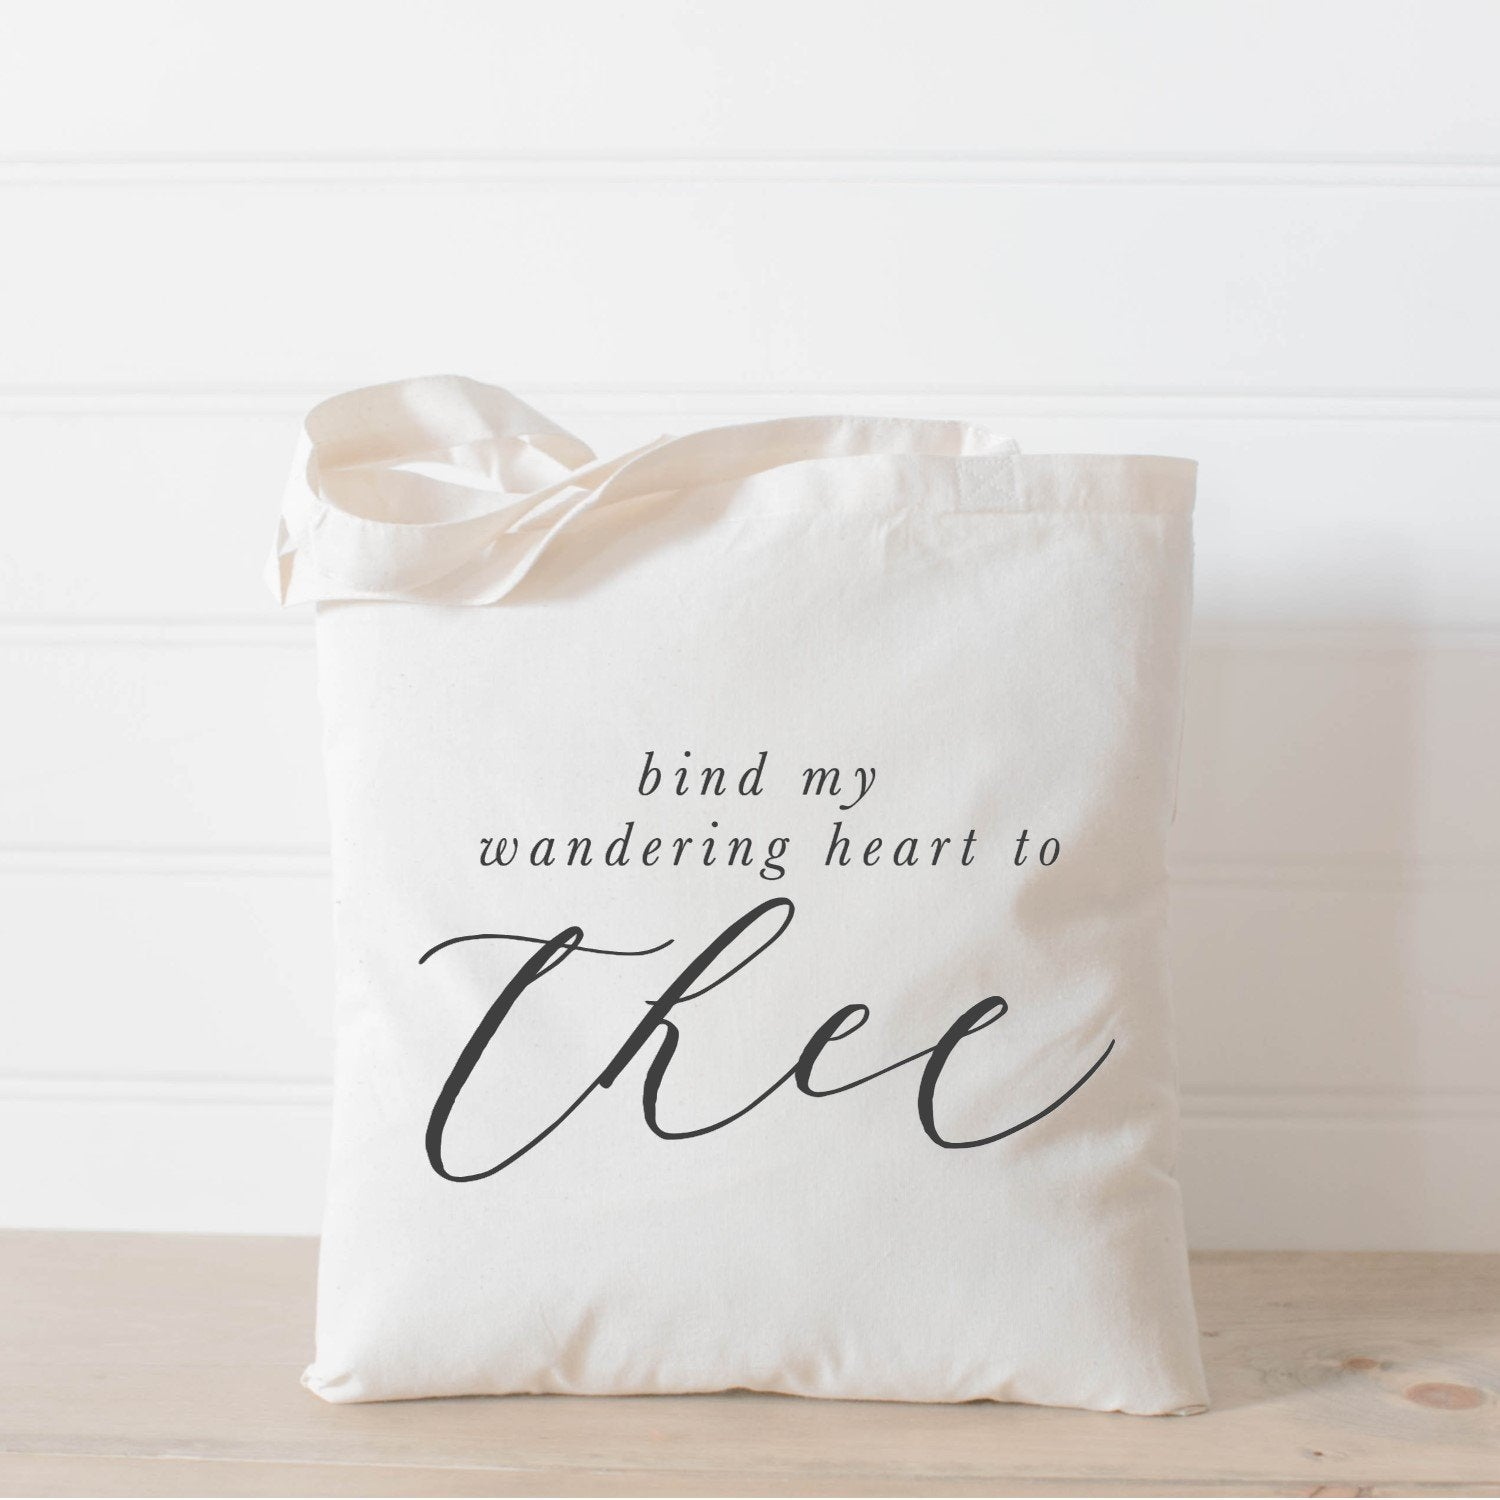 bind, wandering, heart, you, bind my wandering heart to you, typography, lettering, tote, cute, gift, fun, women, girls, psalms, scripture, natural, neutral, simple, minimalist, minimal, perfect